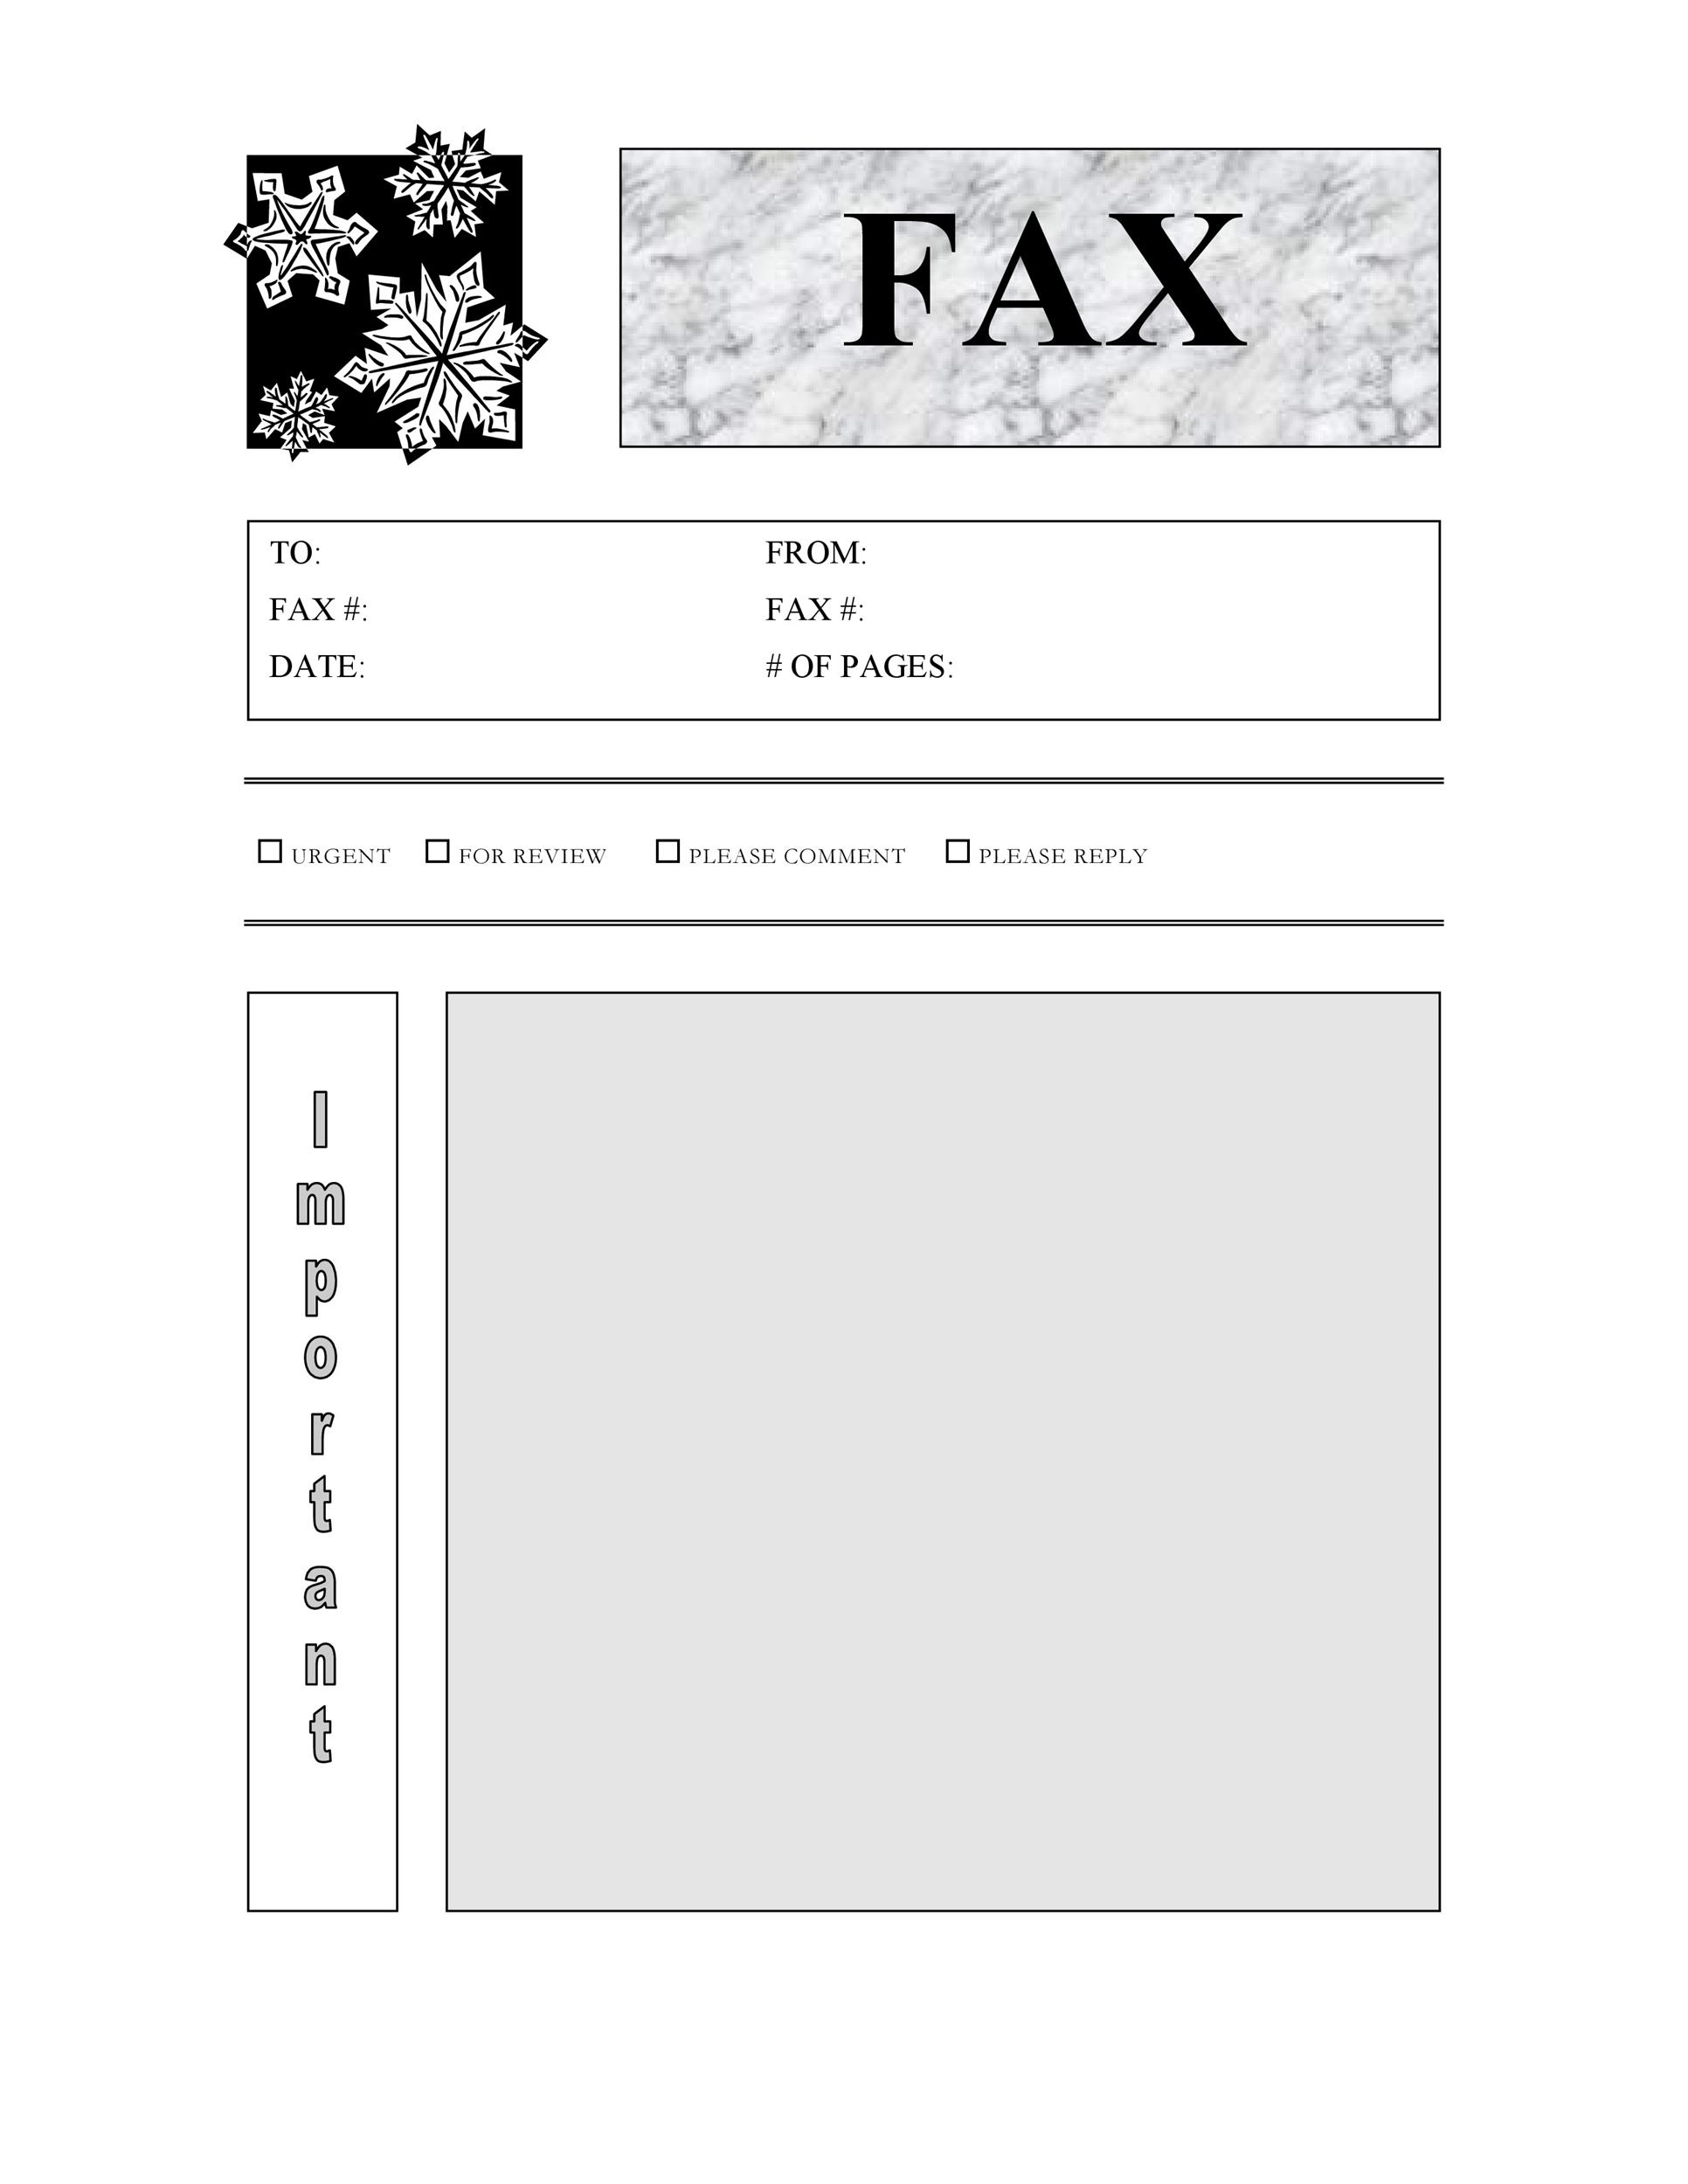 40 printable fax cover sheet templates template lab. Black Bedroom Furniture Sets. Home Design Ideas